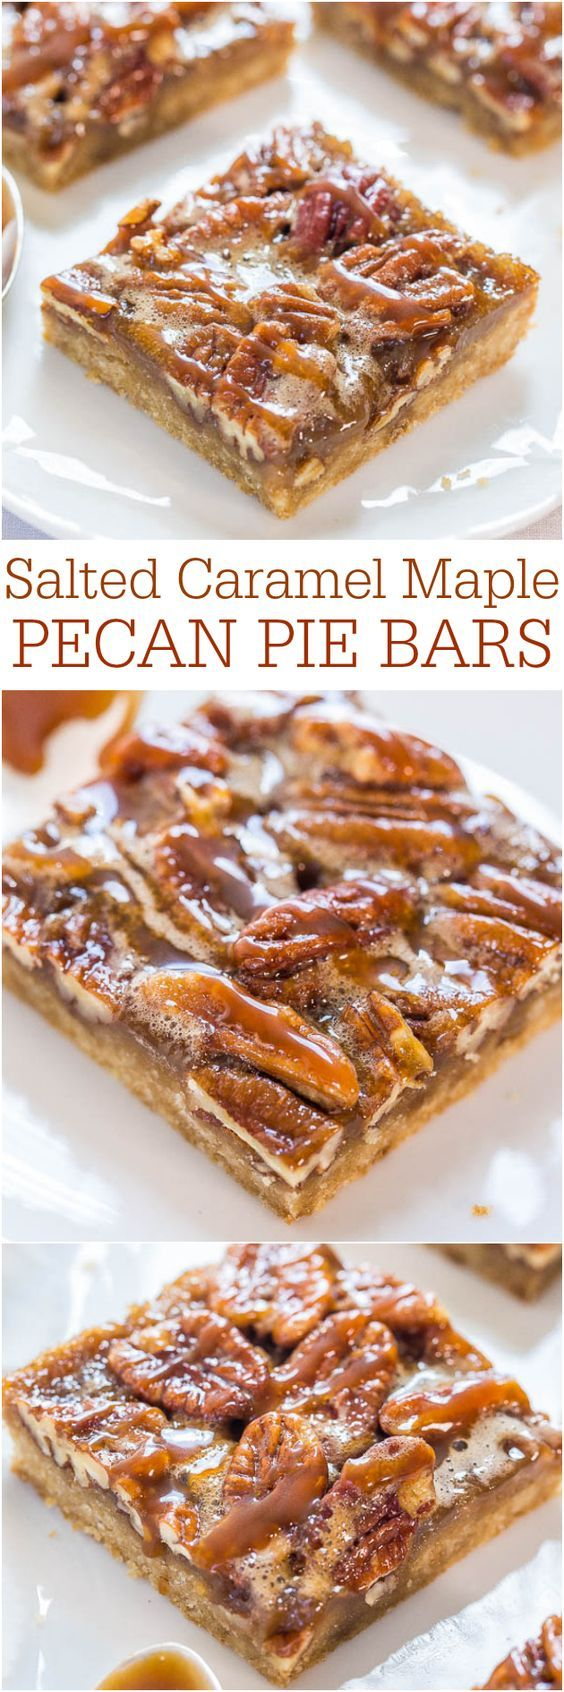 695 best images about Sweet Foods on Pinterest ...